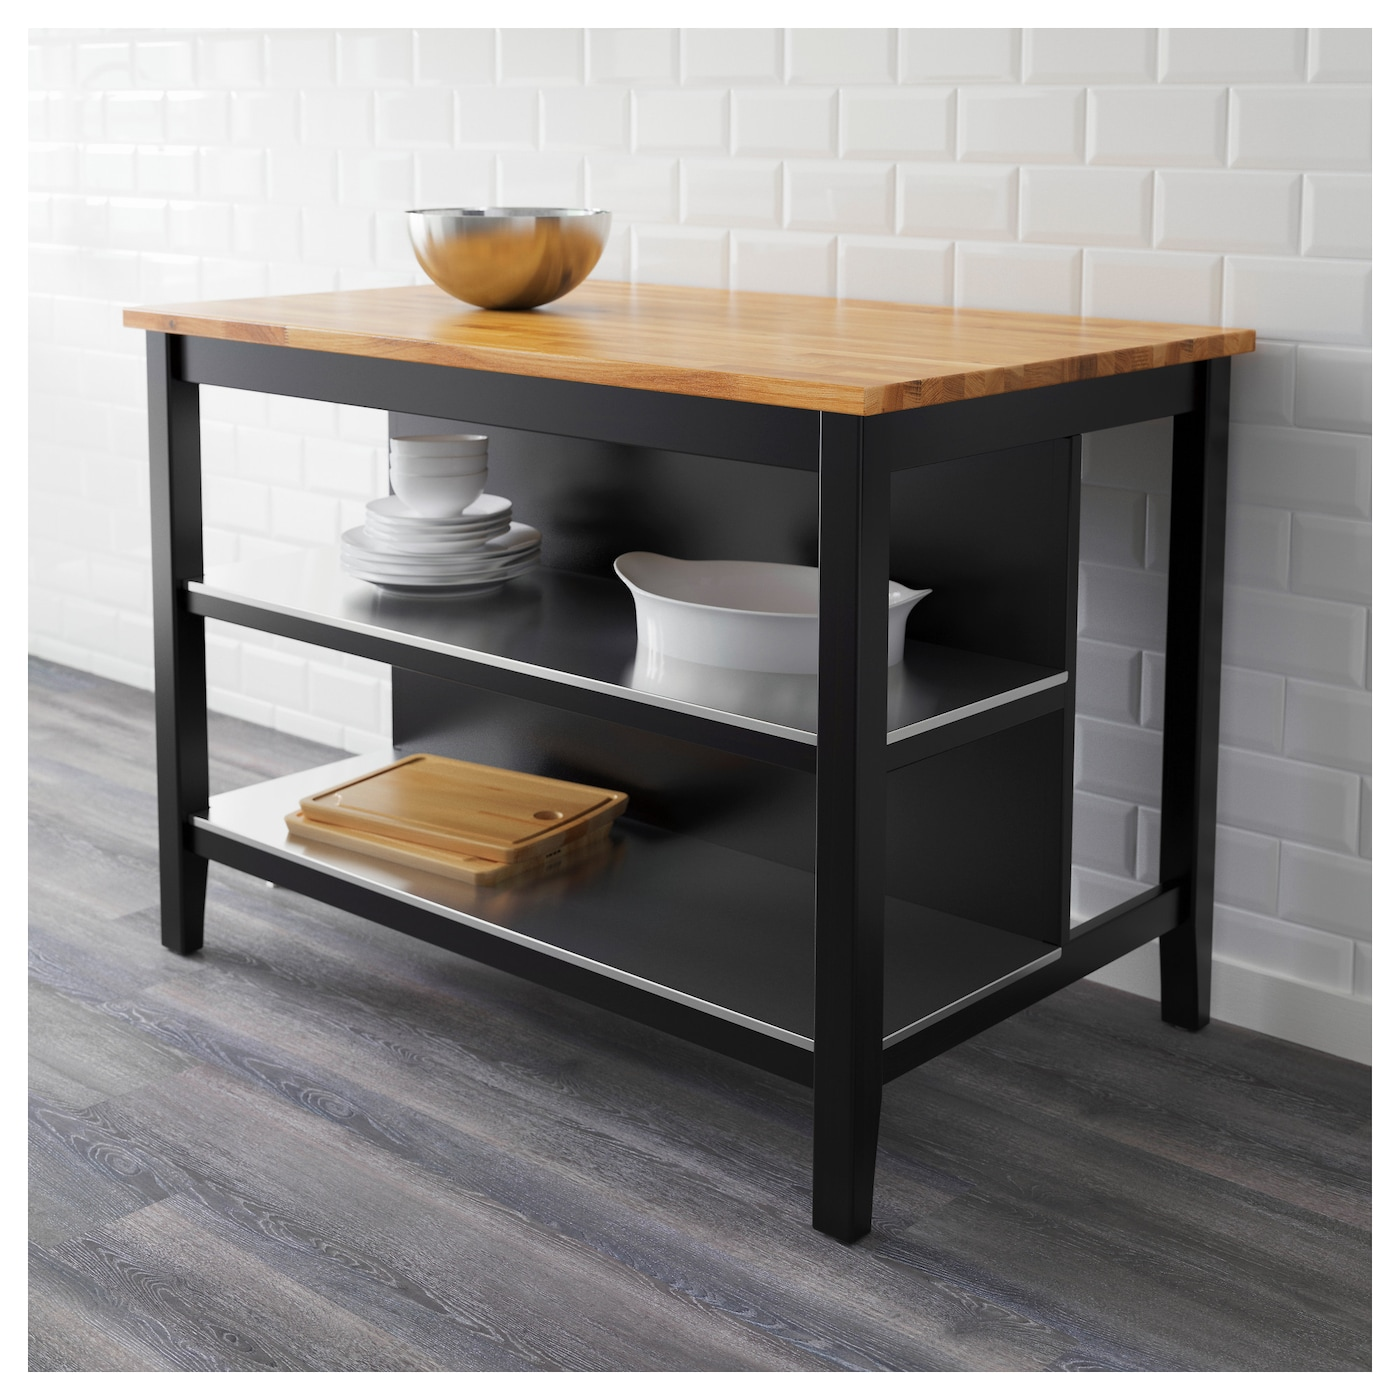 Ikea Stenstorp Kücheninsel Maße ~ stenstorp kitchen island black brown oak 126×79 cm ikea